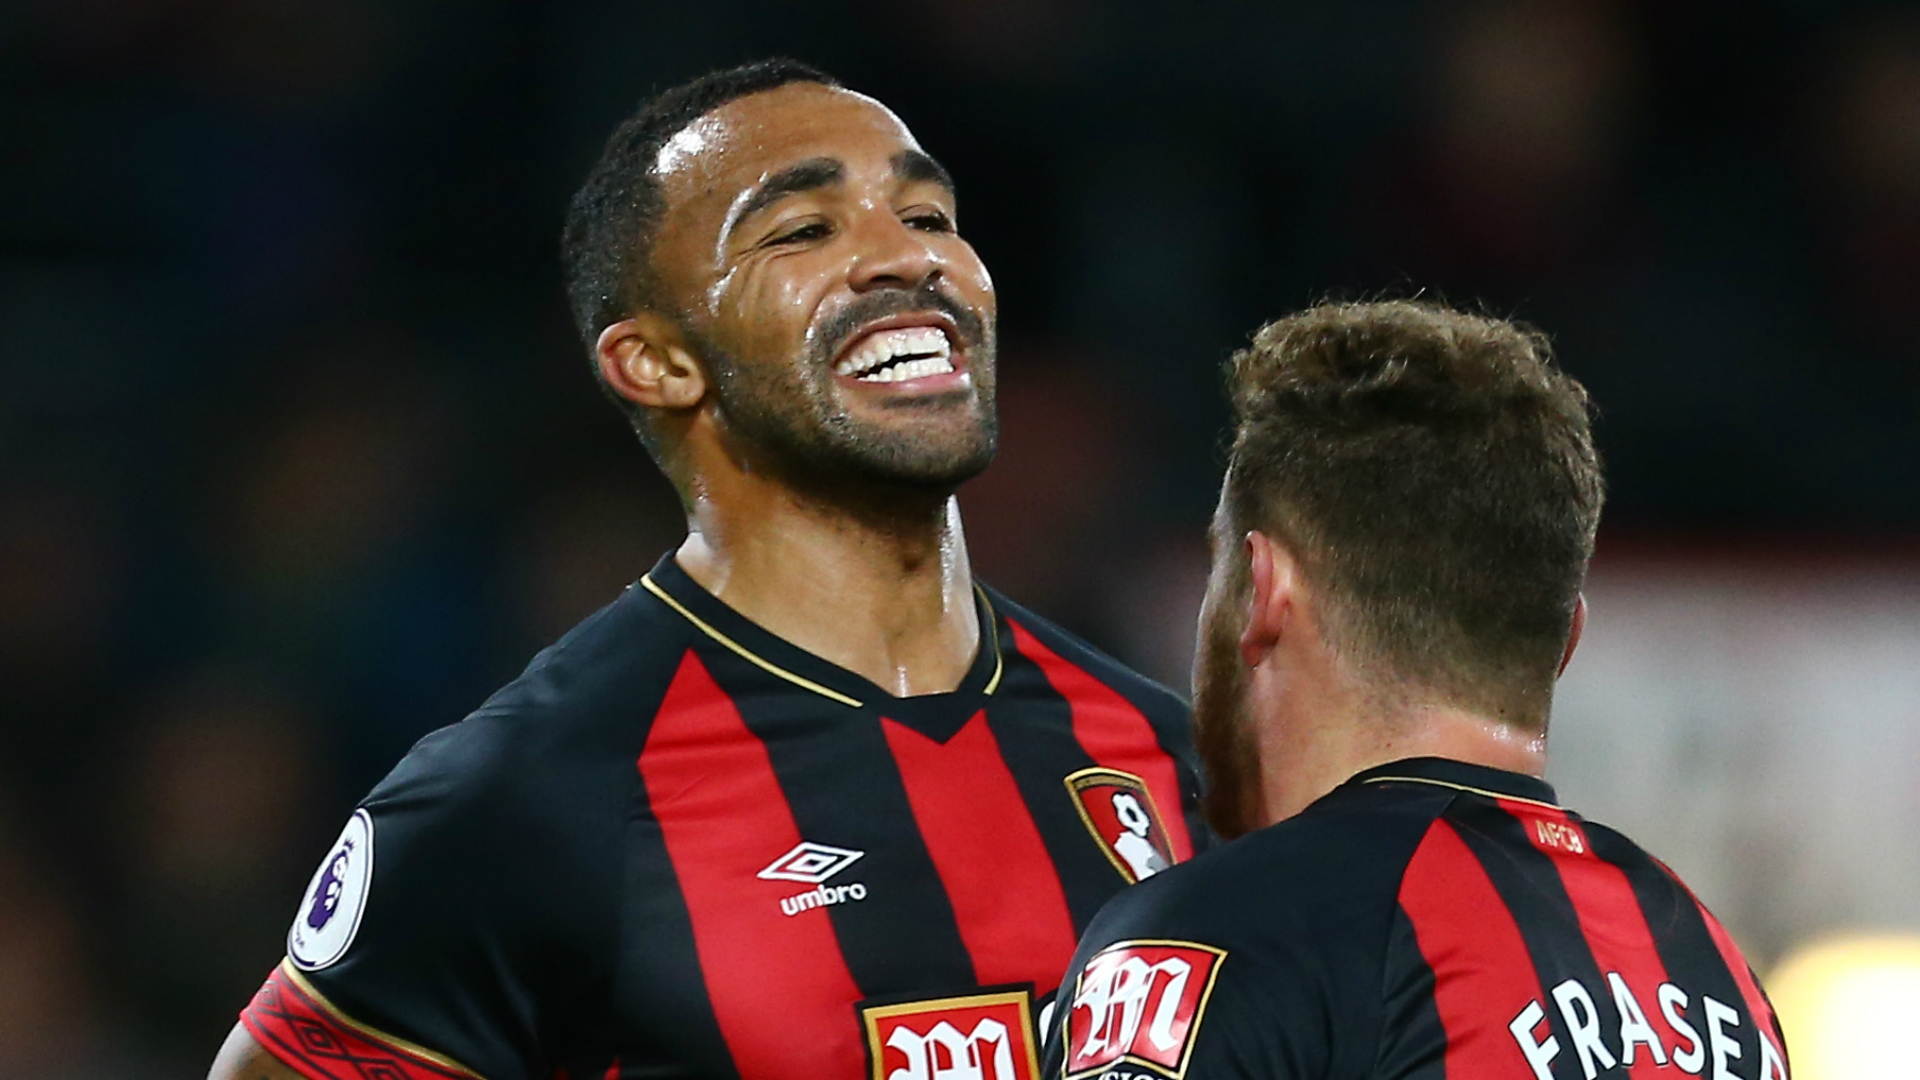 Bournemouth boss Howe rues facing 'outstanding' Sterling after record goal